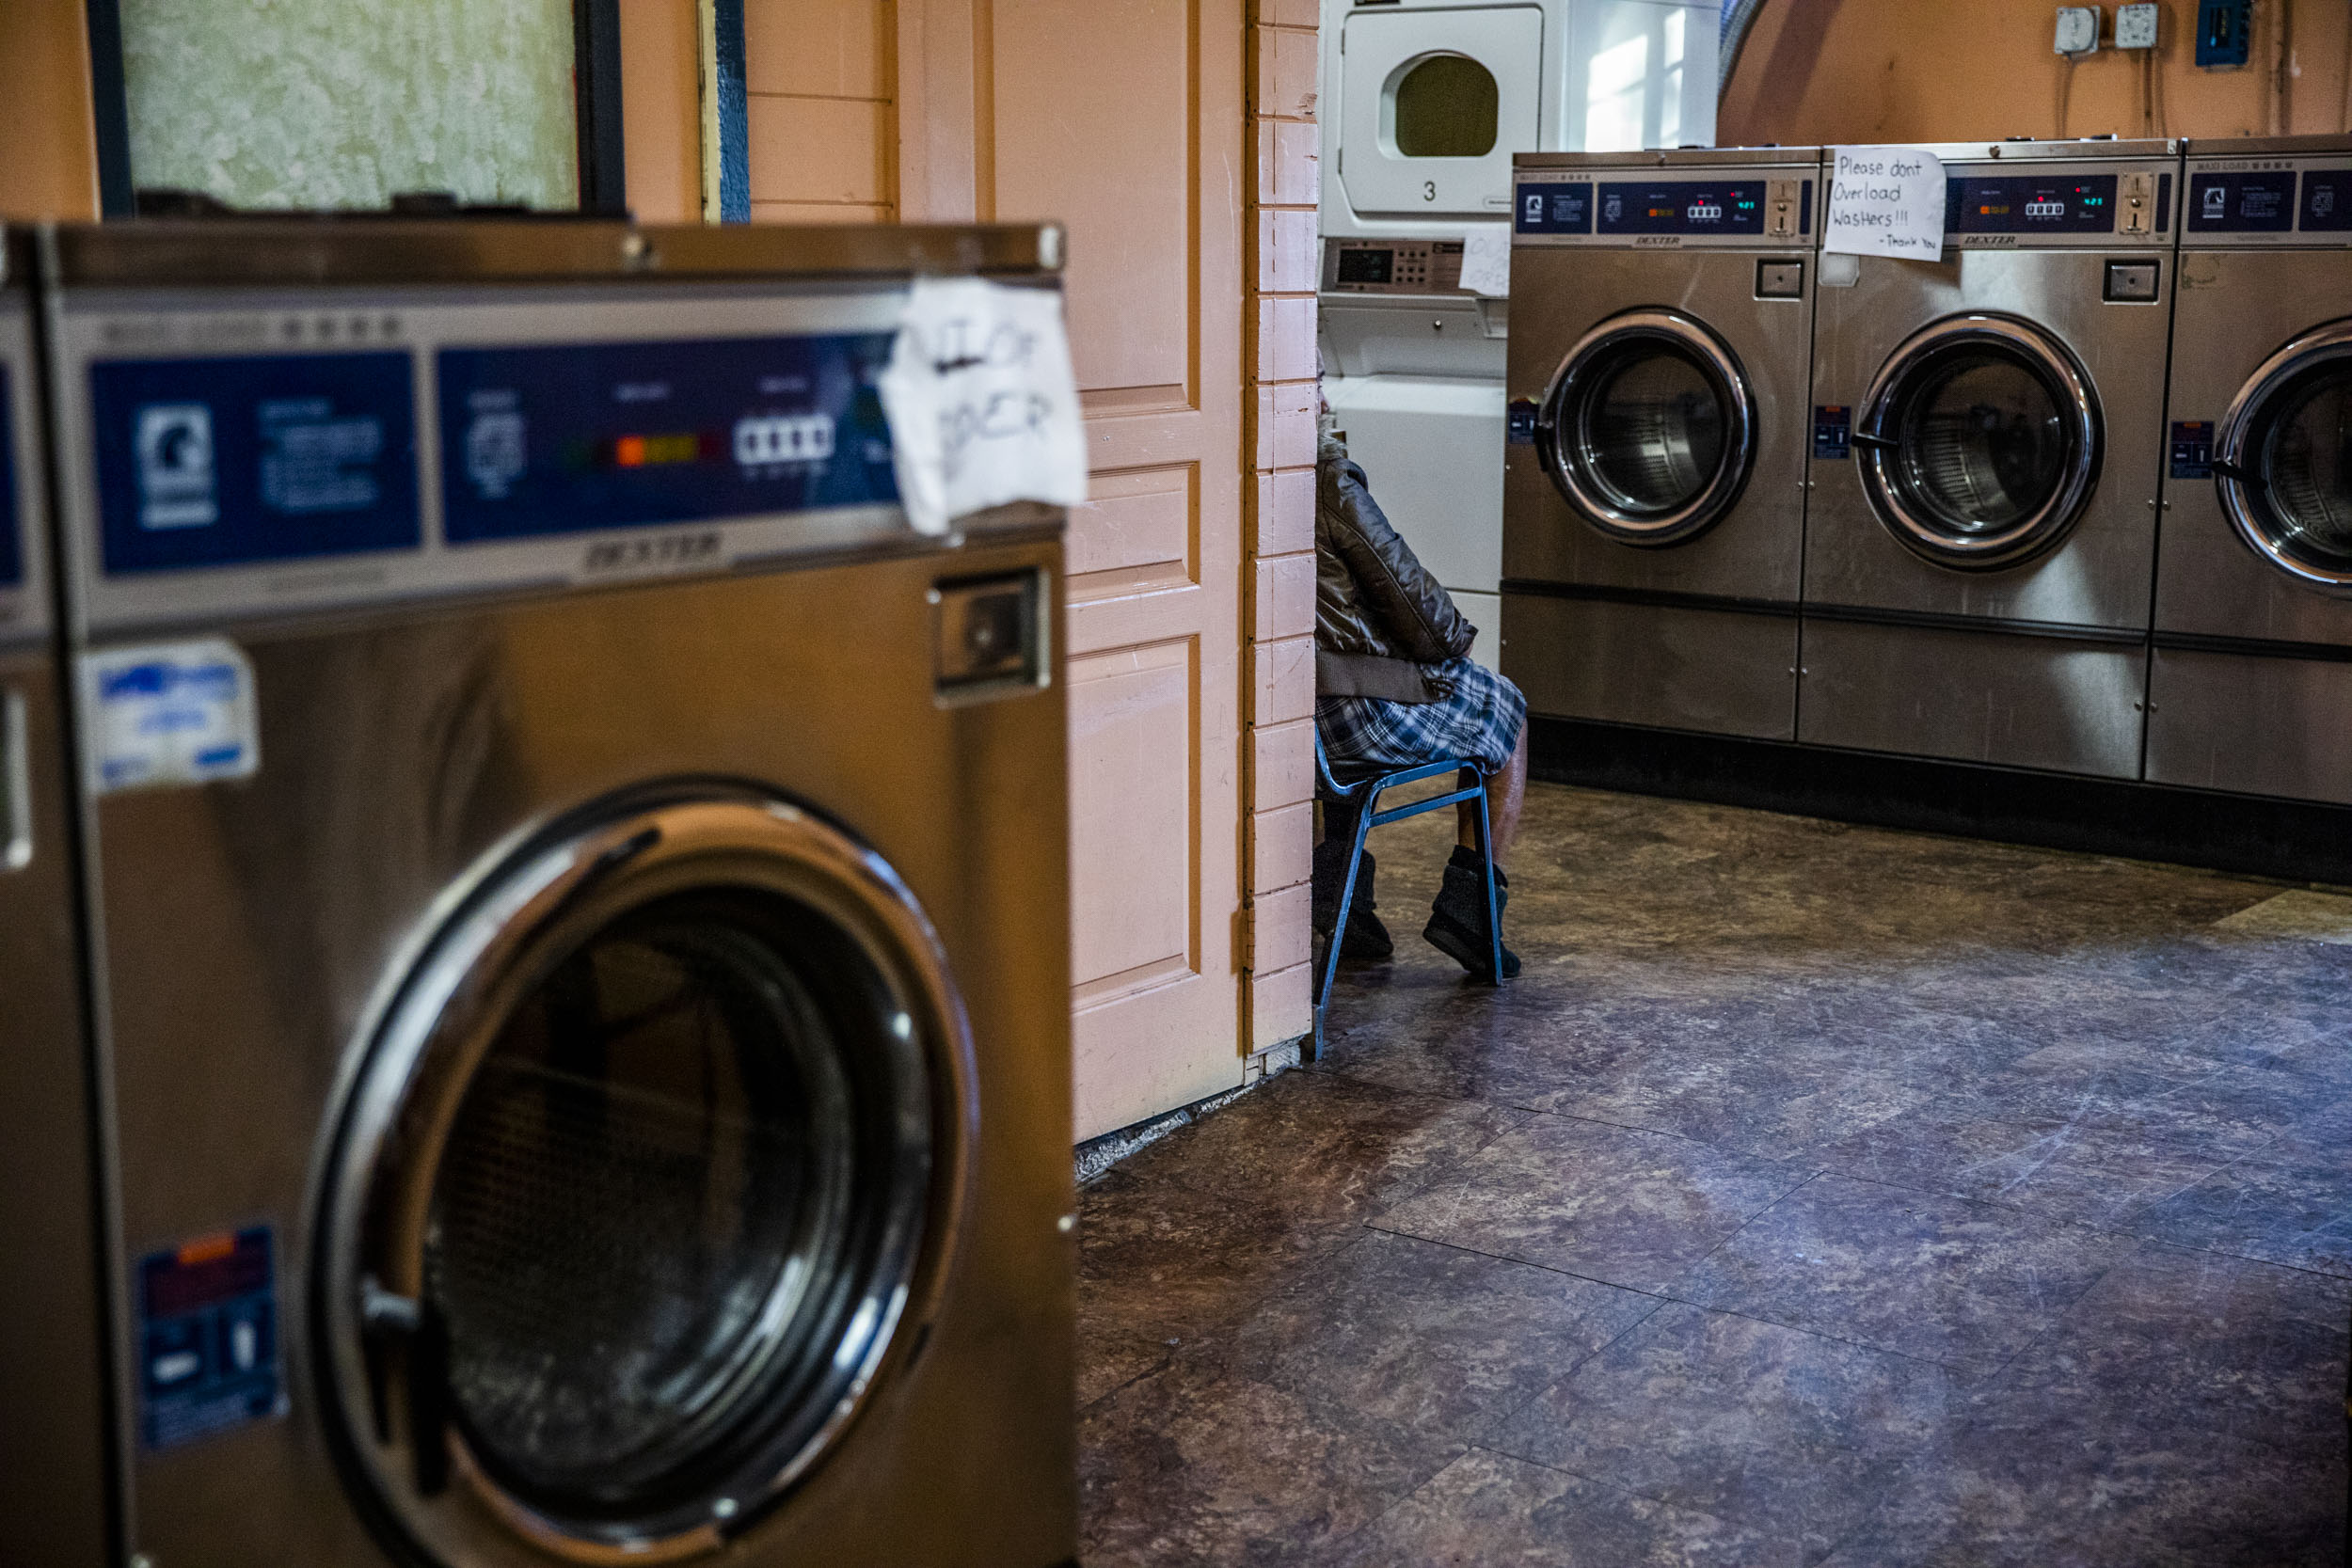 A woman waits for her laundry to finish at King Donuts in Rainier Beach on Sunday, Nov. 18, 2018.